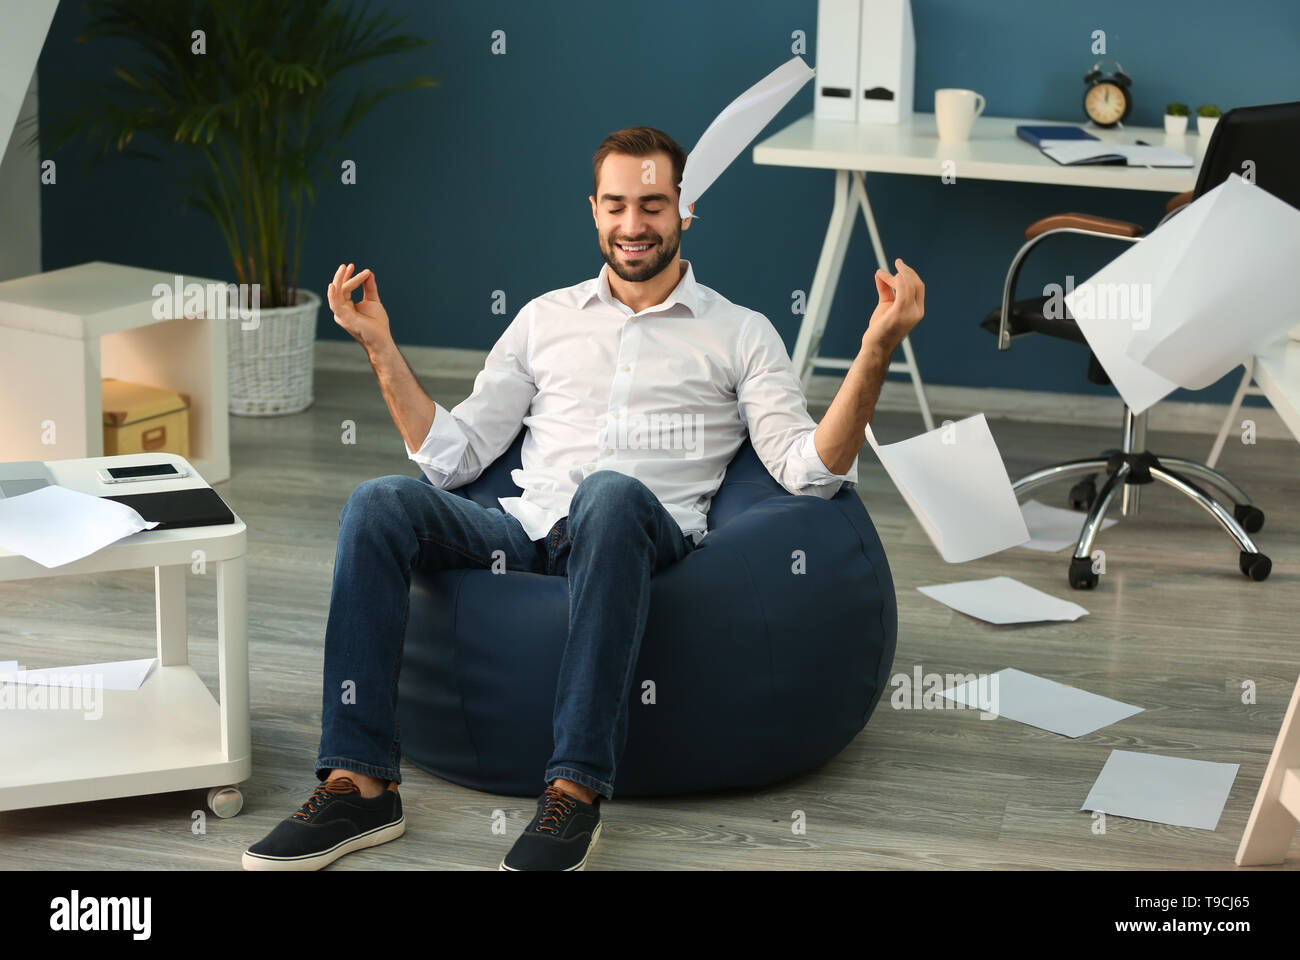 Businessman meditating with a lot of work in office - Stock Image